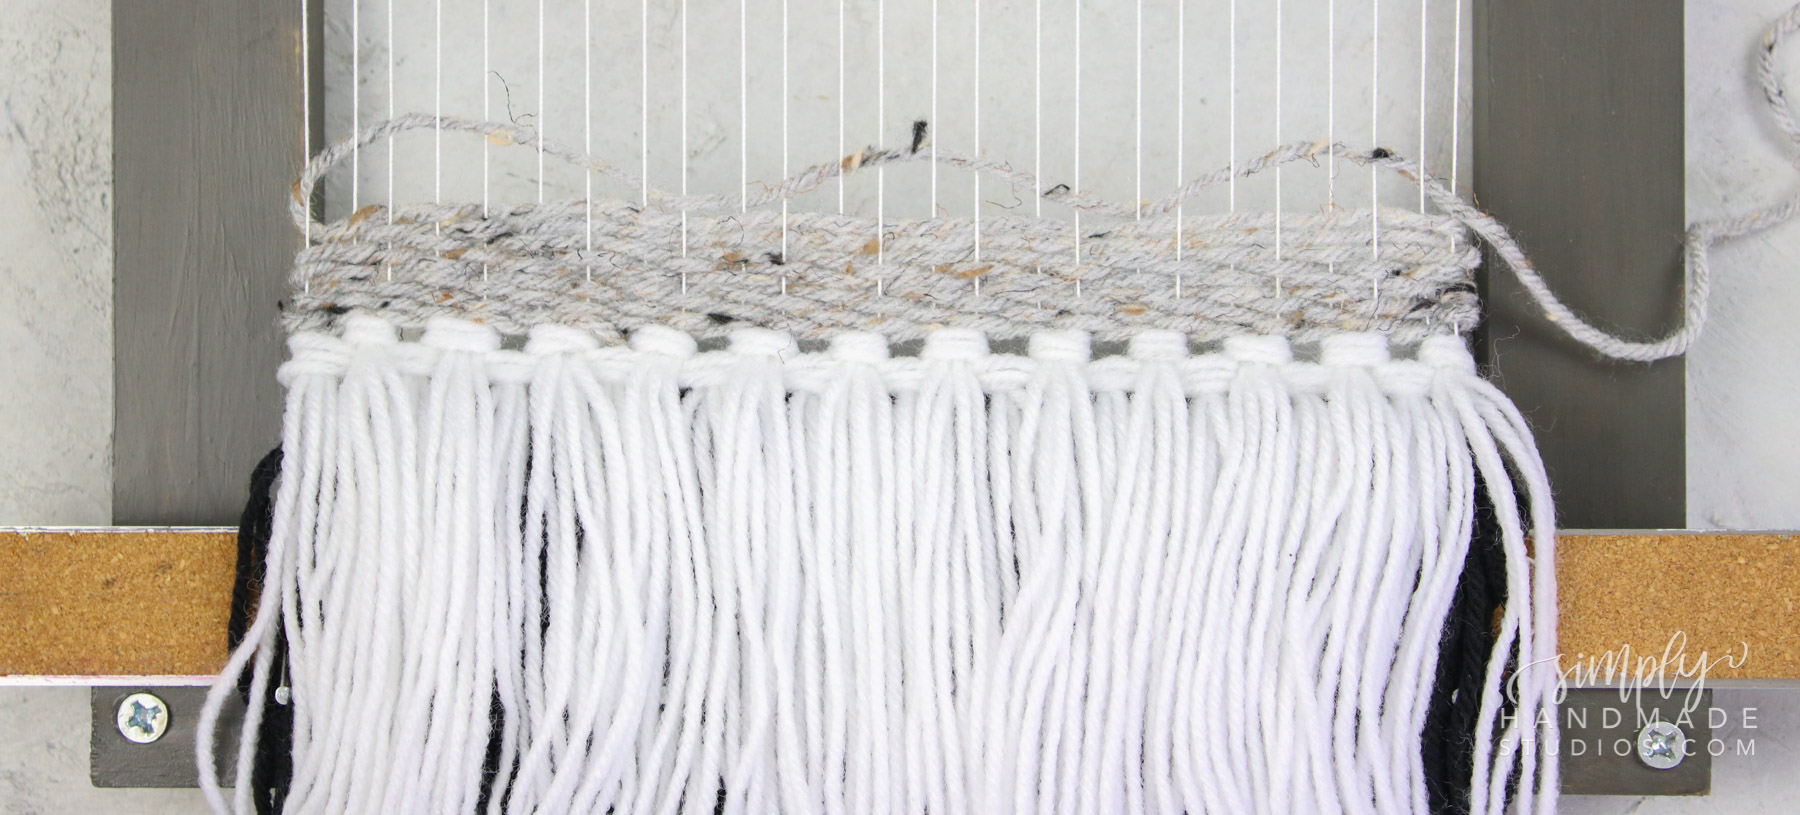 Learn to Weave: 3 Basic Weaving Patterns for Beginners